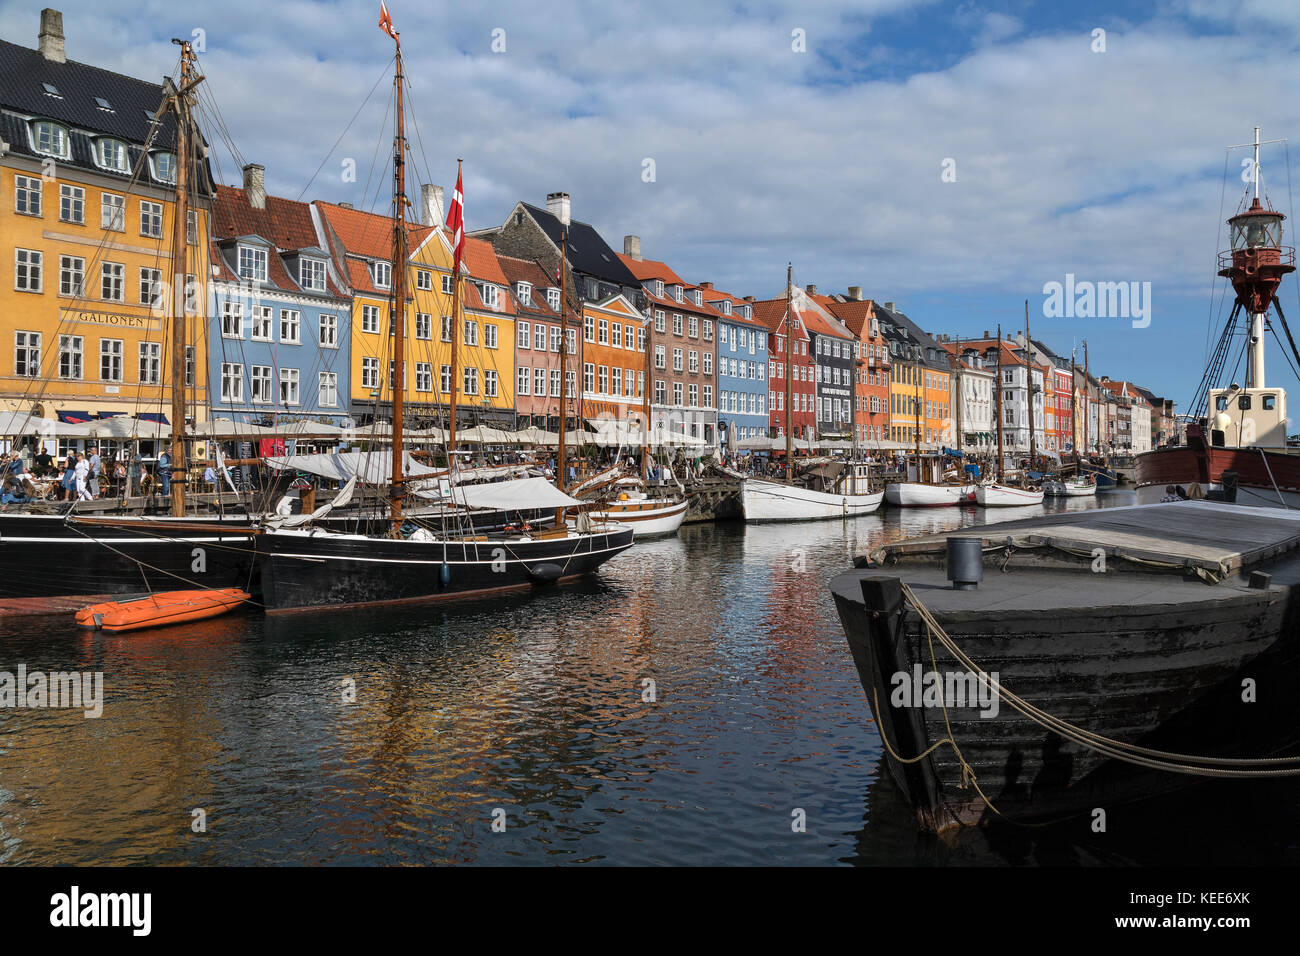 Copenhagen - Denmark.  Nyhavn or New Harbour  is a 17th century waterfront, canal and entertainment district from - Stock Image